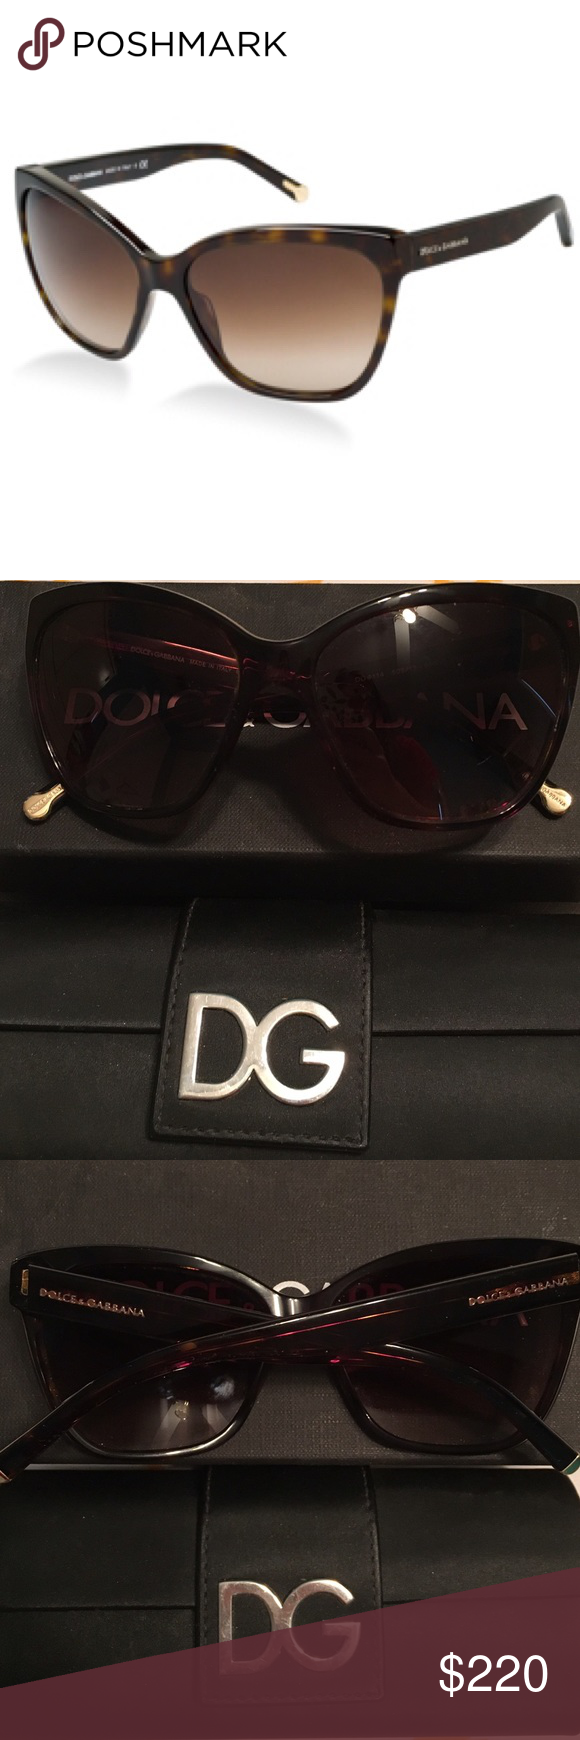 Dolce & Gabbana Brown Sunglasses Rarely worn. Brown sunglasses. Great condition. Comes with box, case, and certificate of authenticity. Full rim frame. Rectangular shape. Color: Havana Frame: Brown Gradient Dolce & Gabbana Accessories Sunglasses